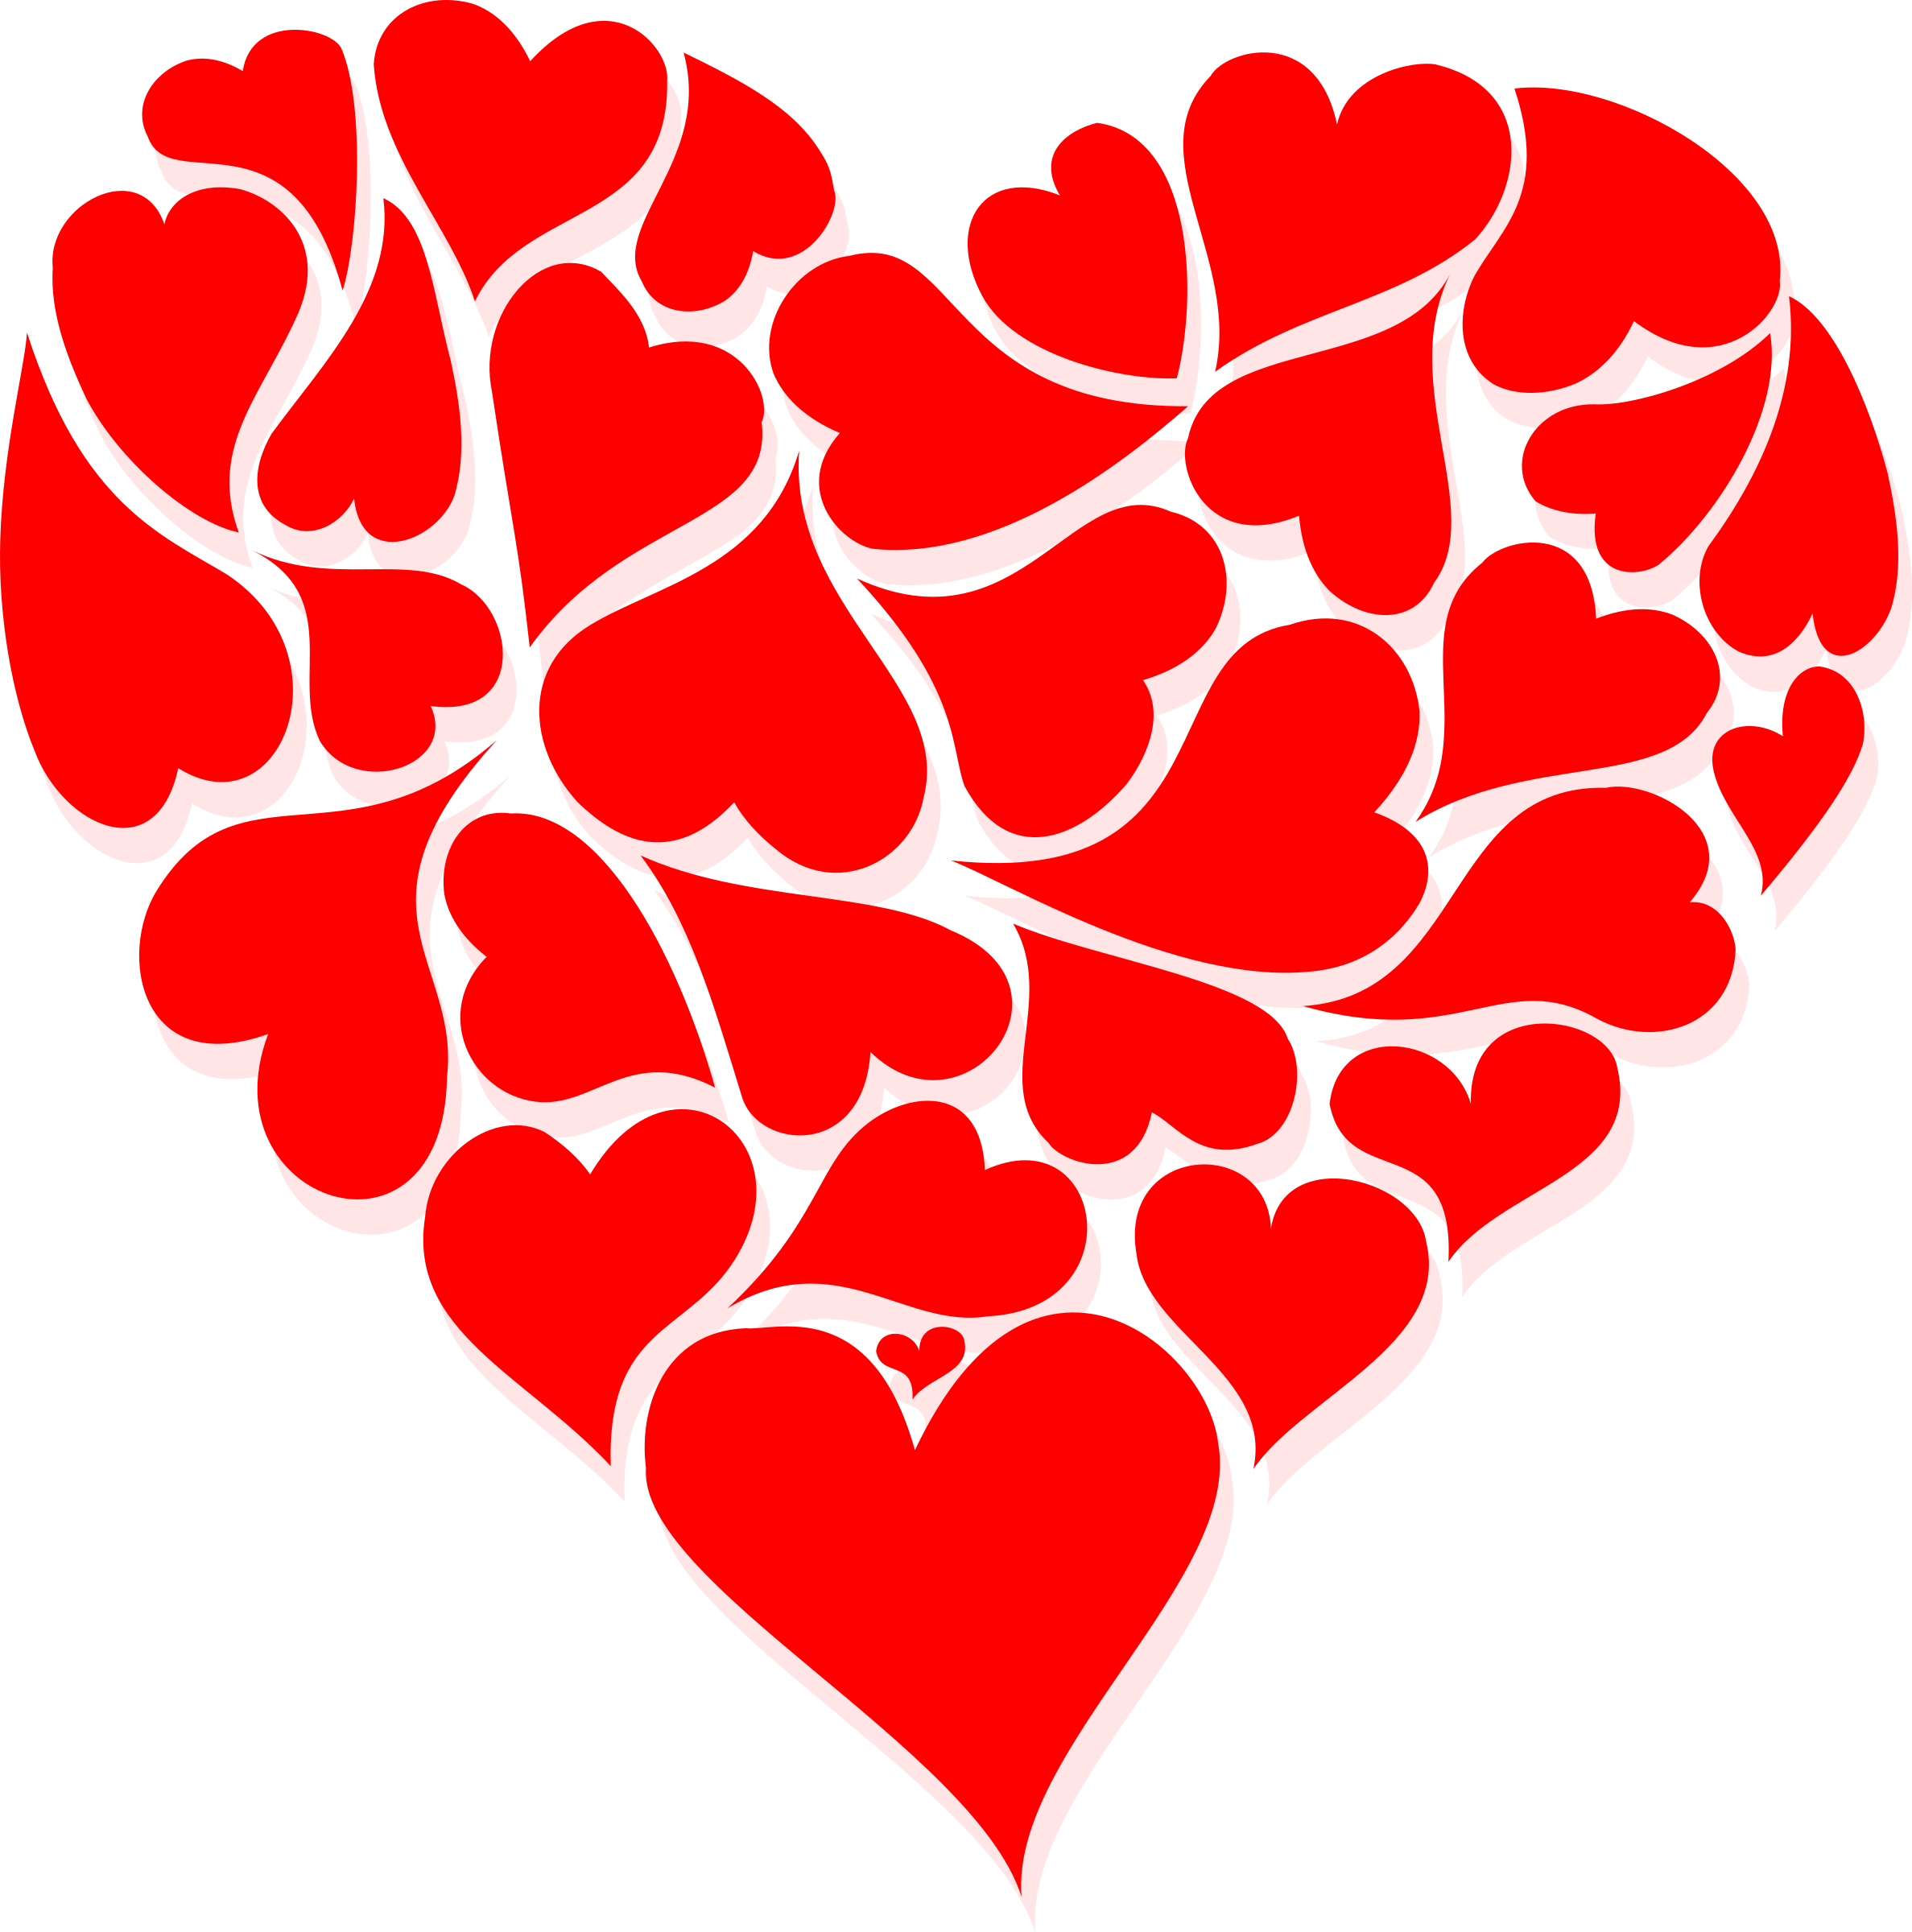 Happy texture transparentpng. Valentines day heart png clip art freeuse stock